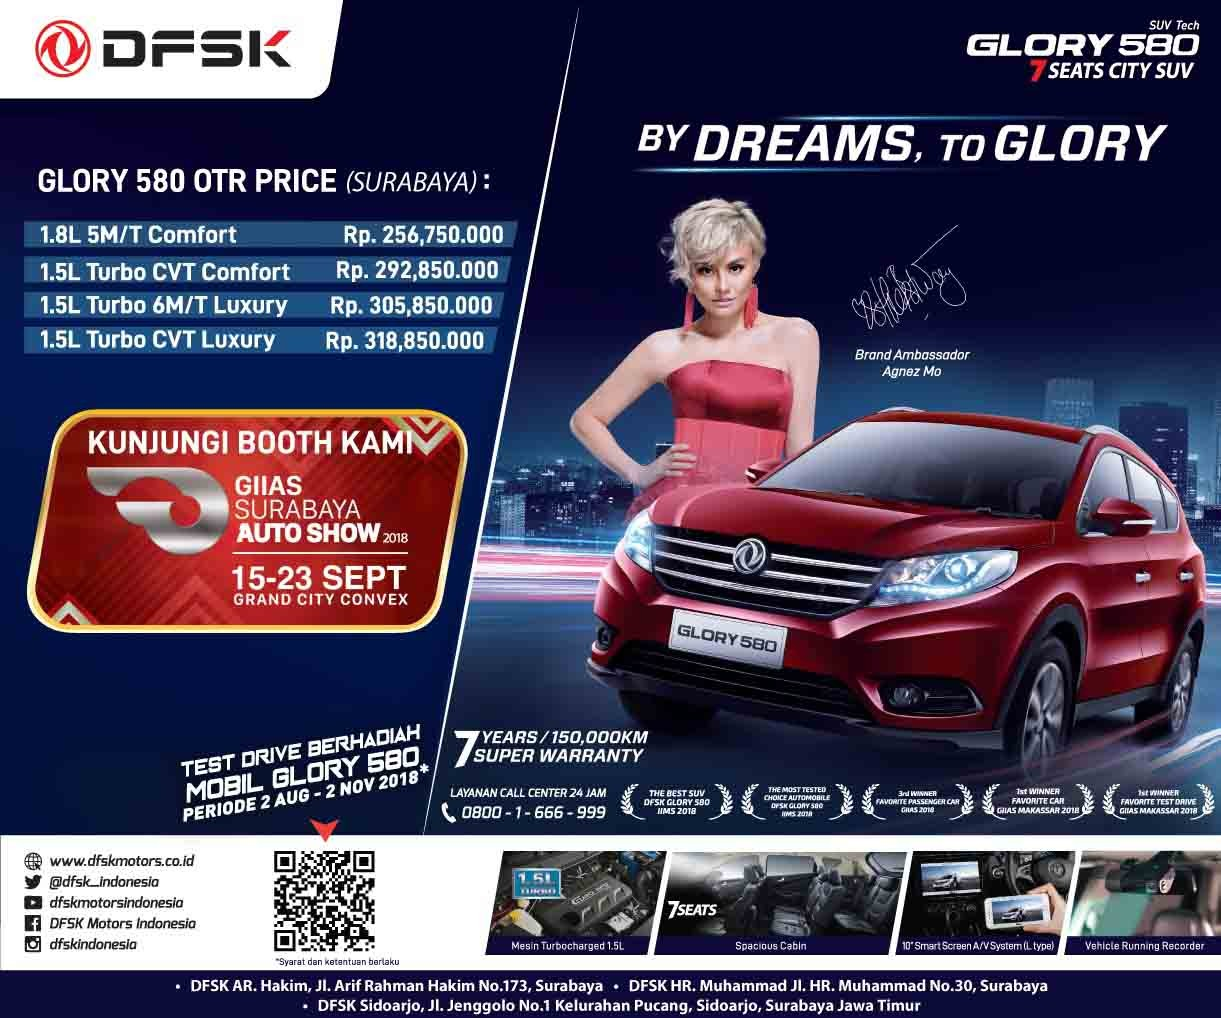 DFSK Glory 580 Launching Surabaya - [en]